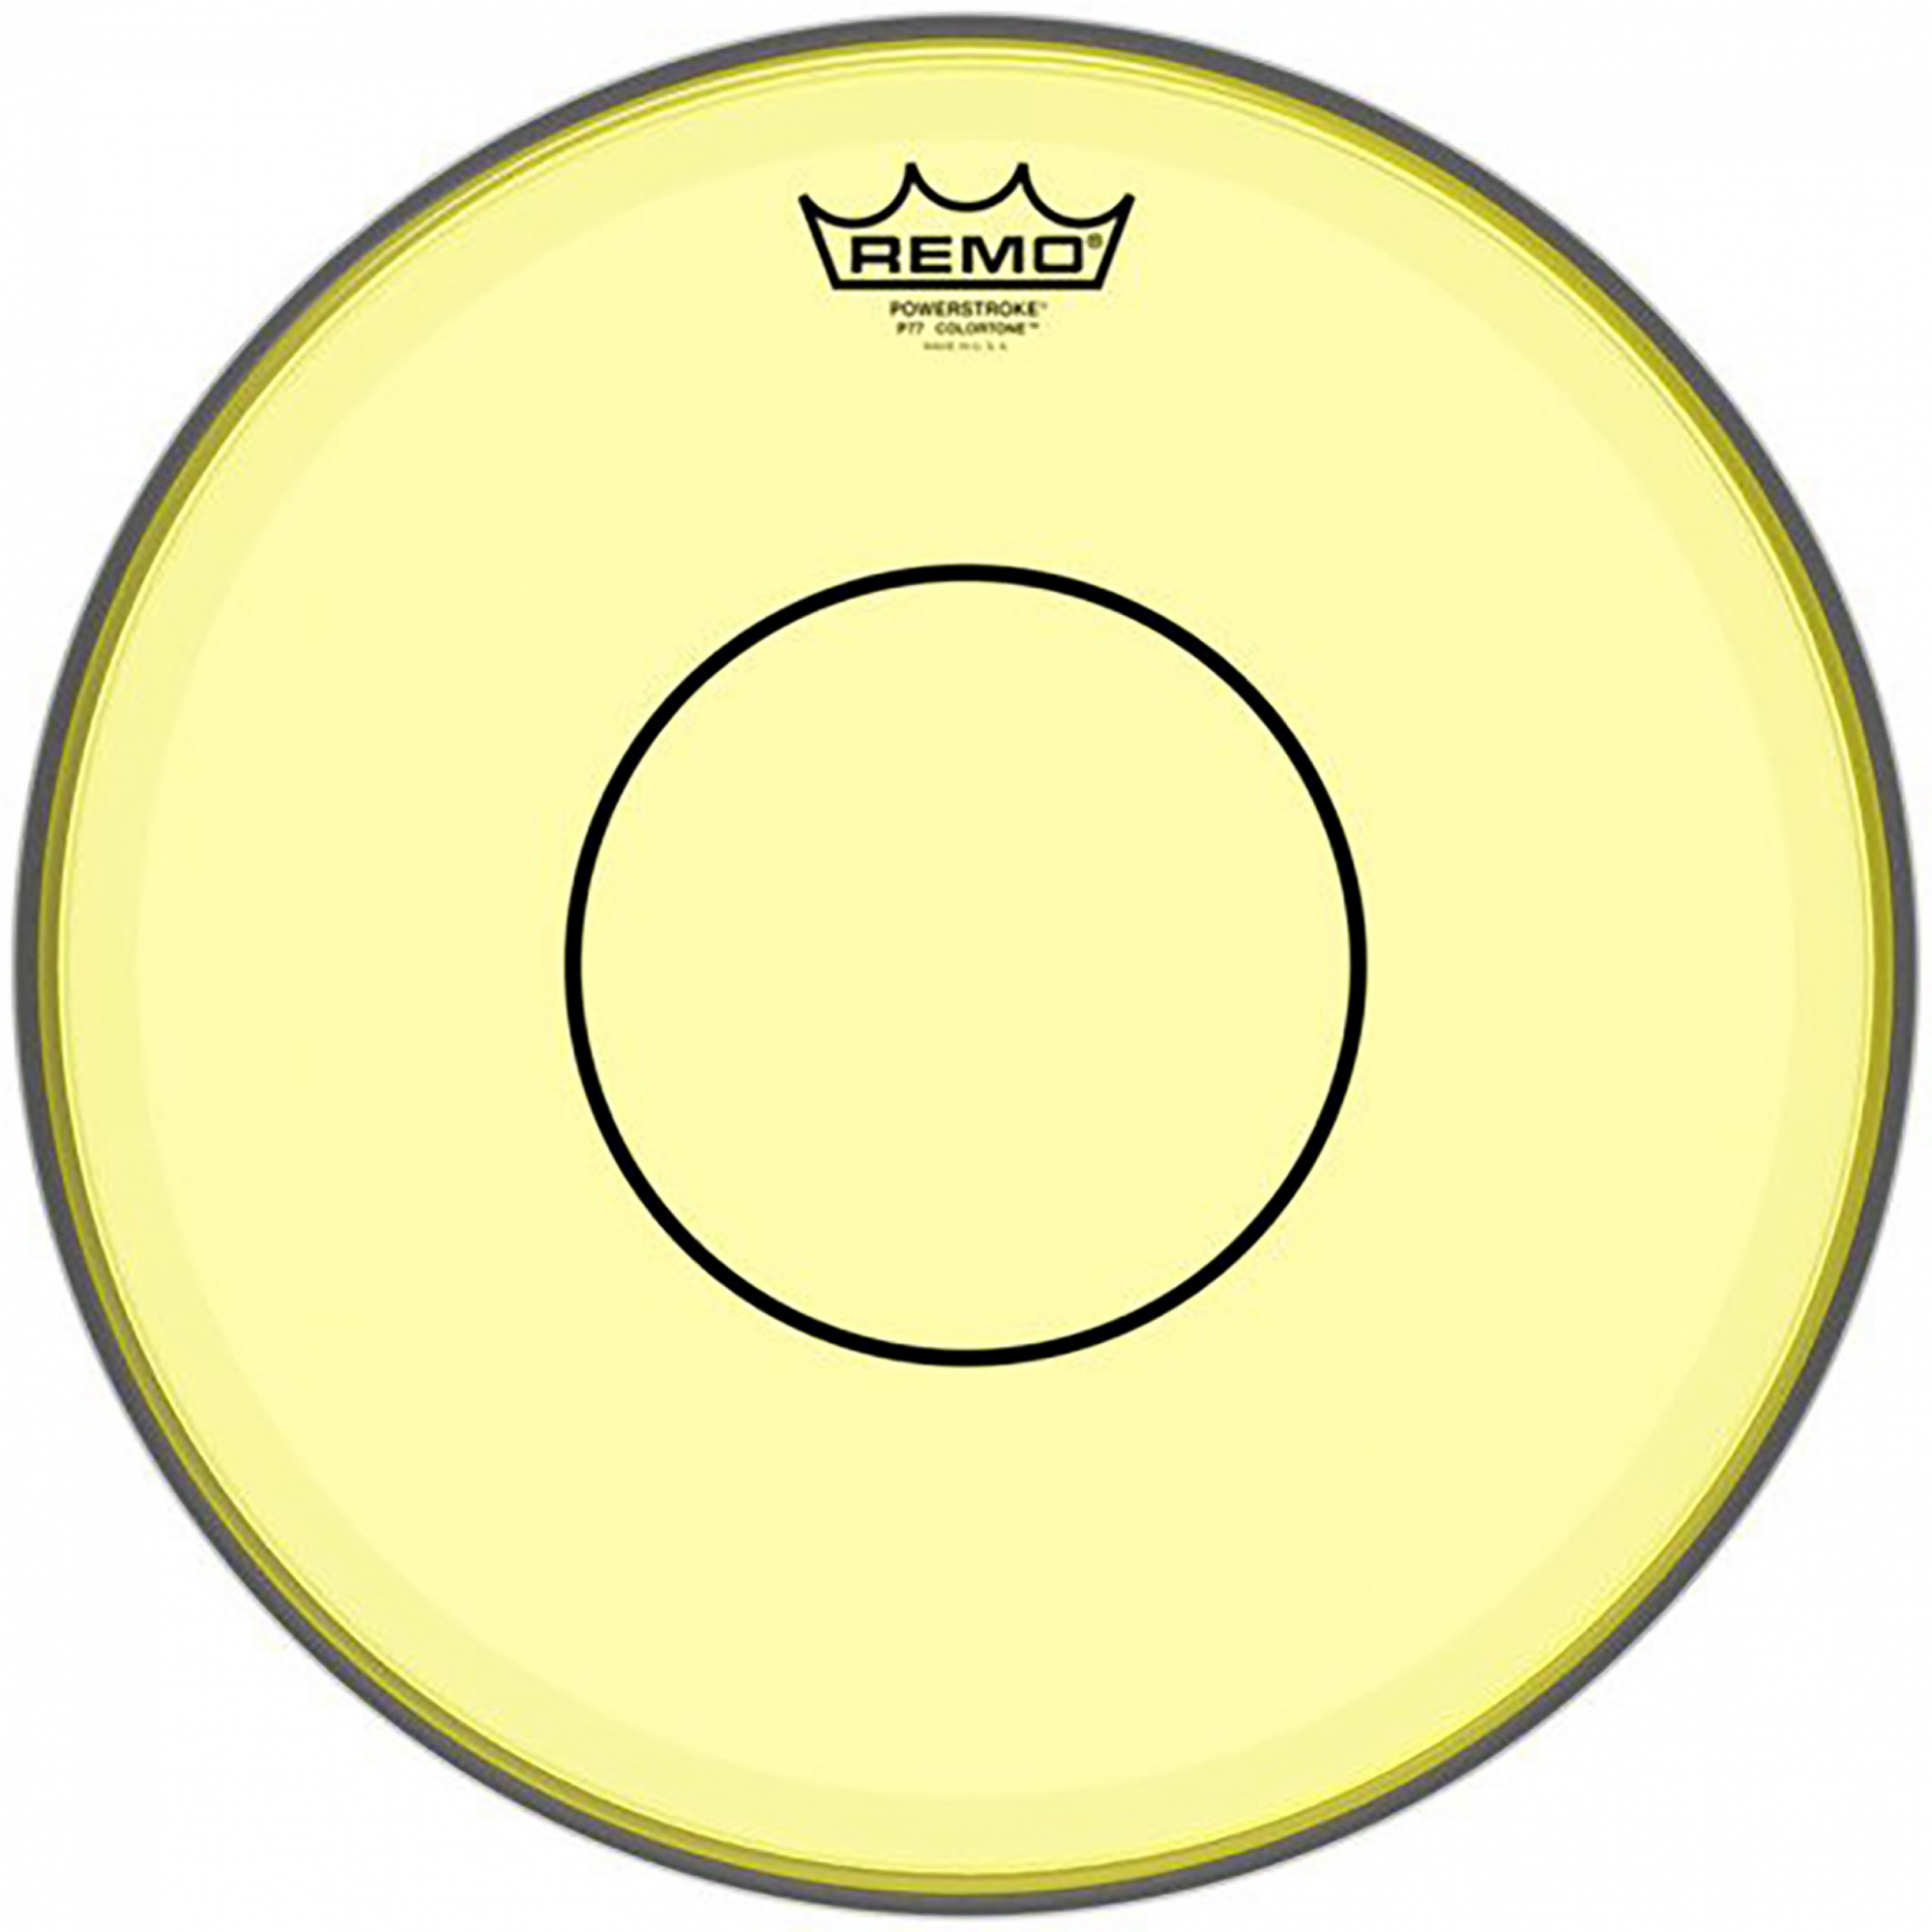 remo 13 powerstroke 77 colortone yellow snare drum head p7 0313 ct ye rockem music. Black Bedroom Furniture Sets. Home Design Ideas